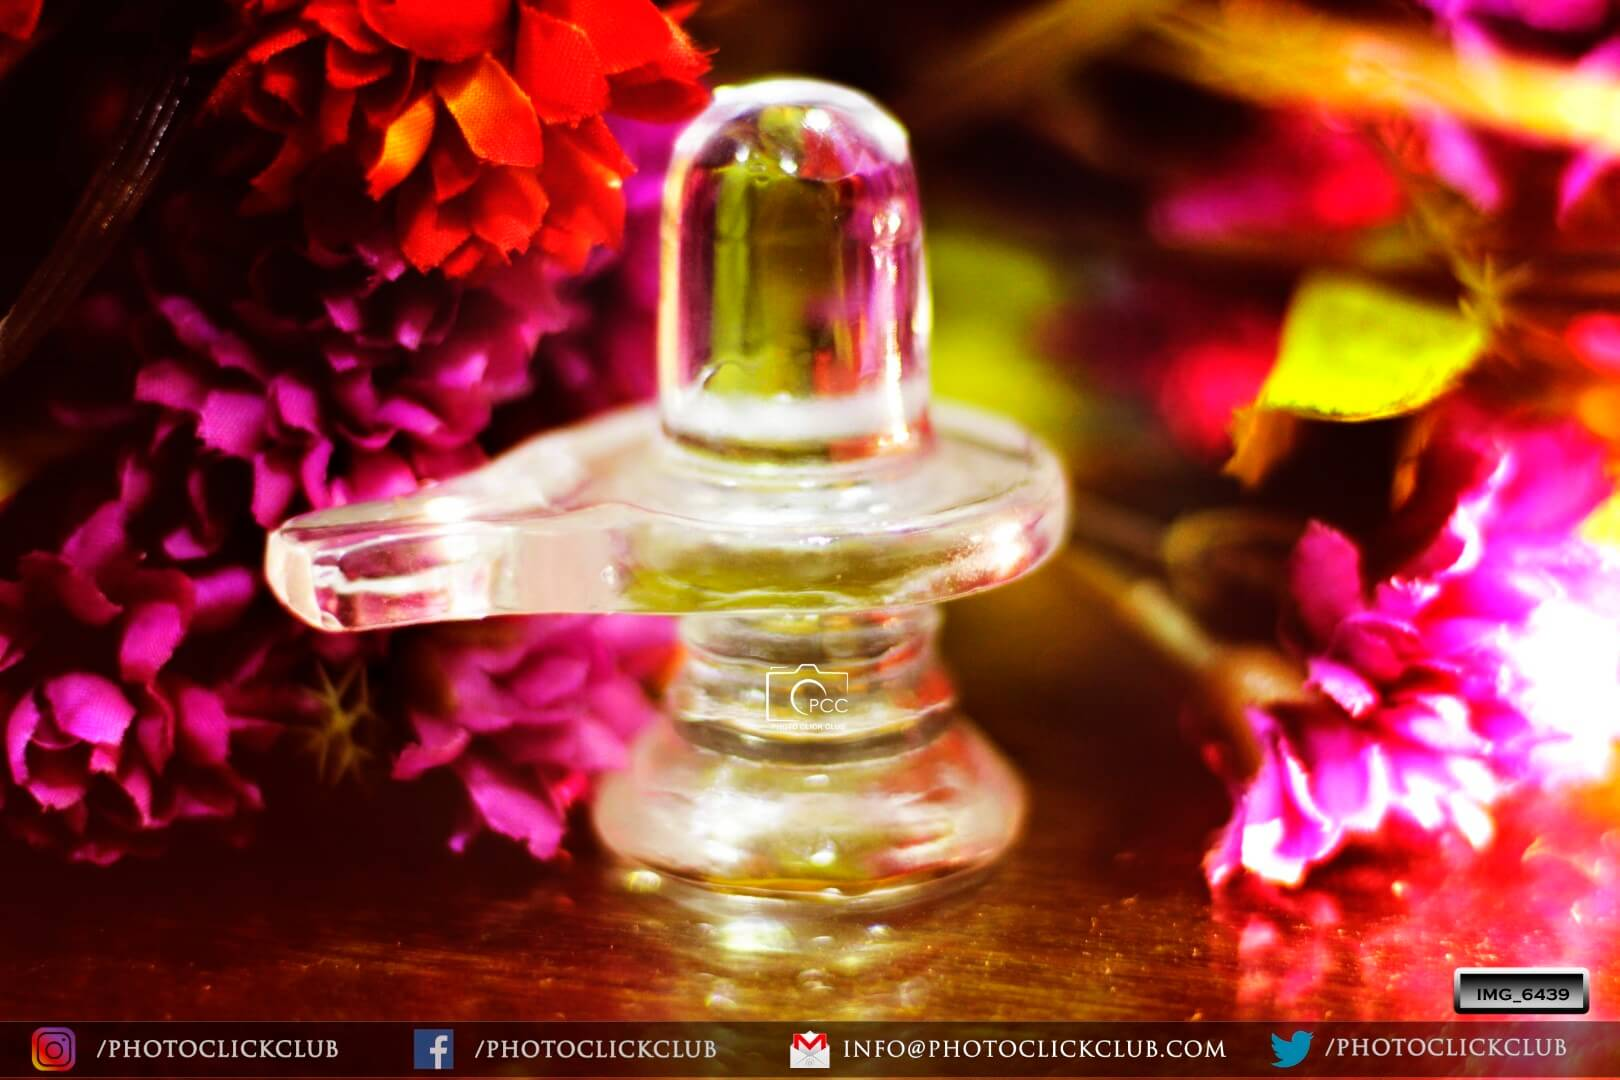 Observances in Maha Shivratri